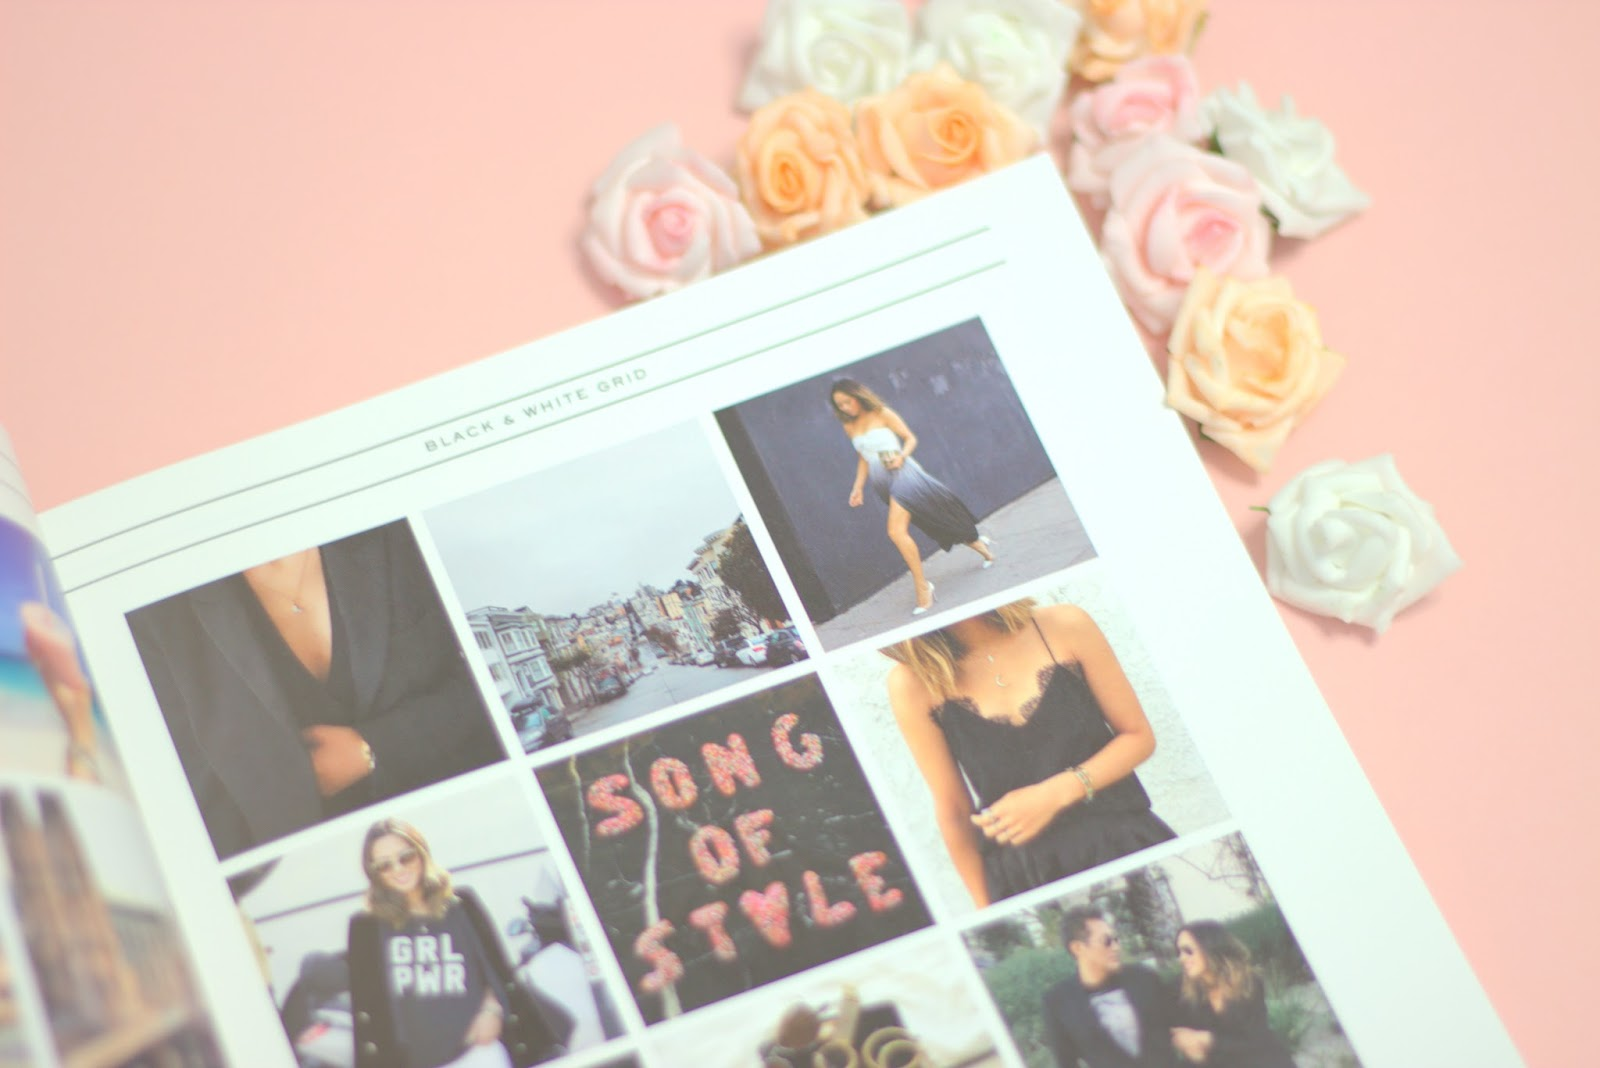 capture your style by aimee song, book review, instagram tips